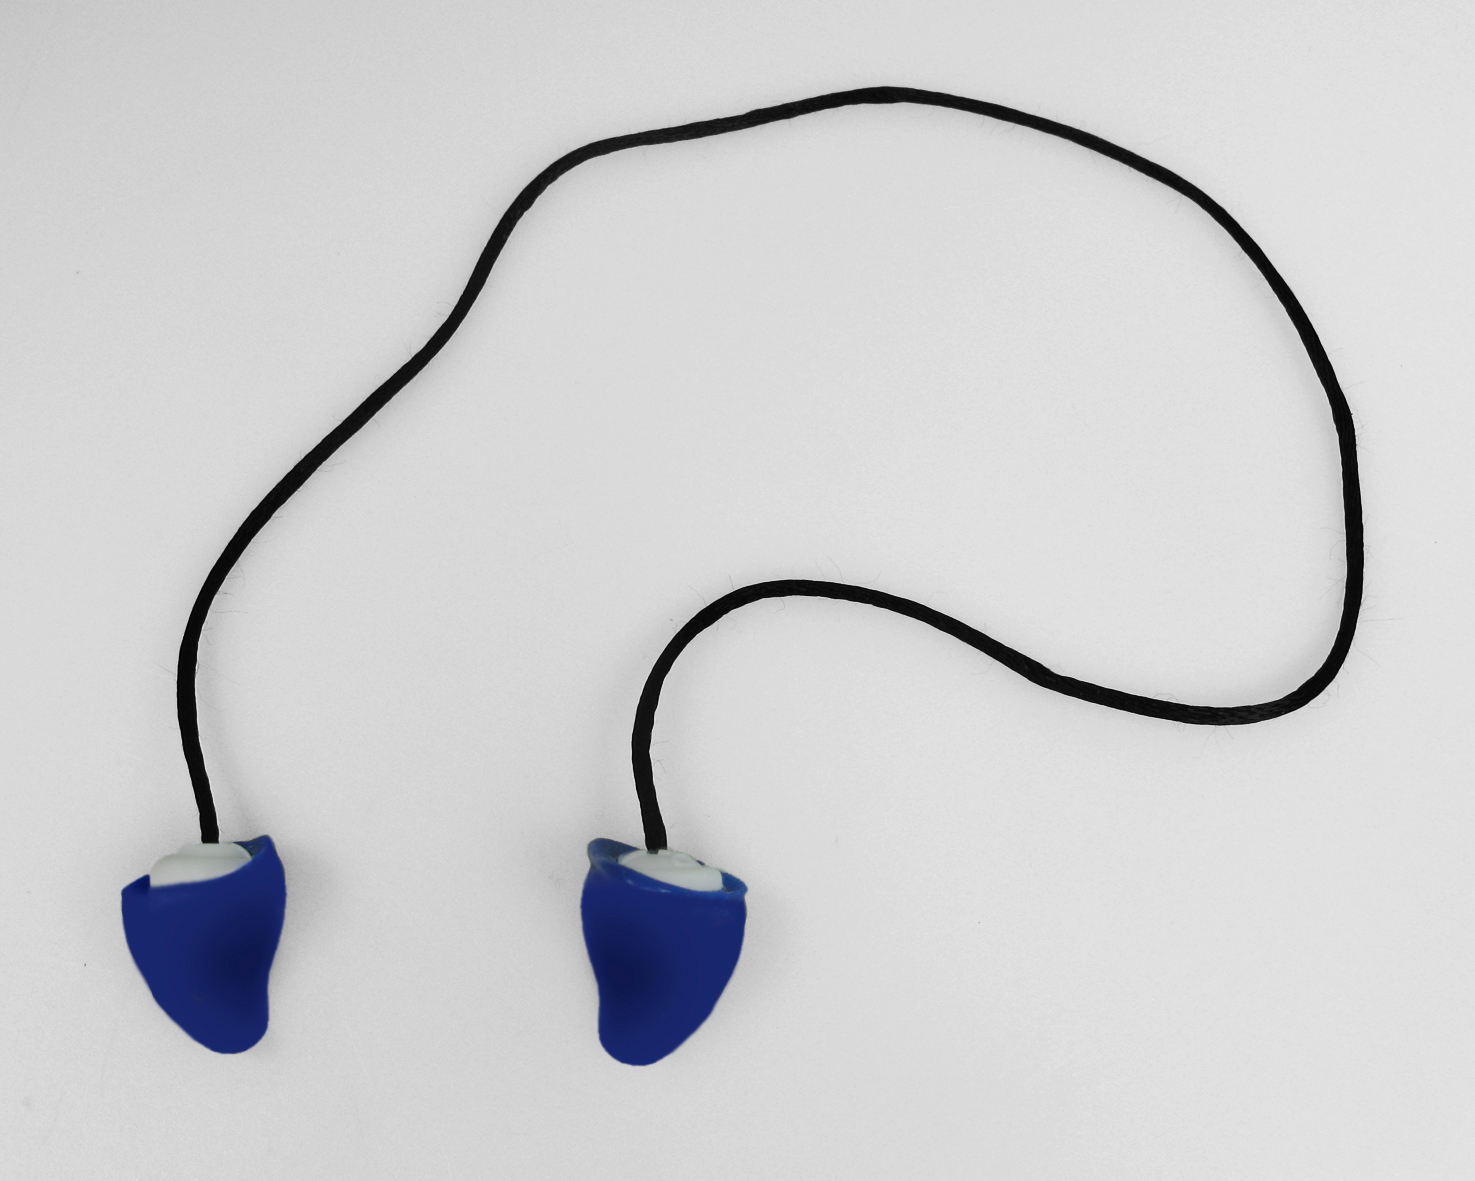 ZenPlugs Connected With A Cord, String Or Lanyard